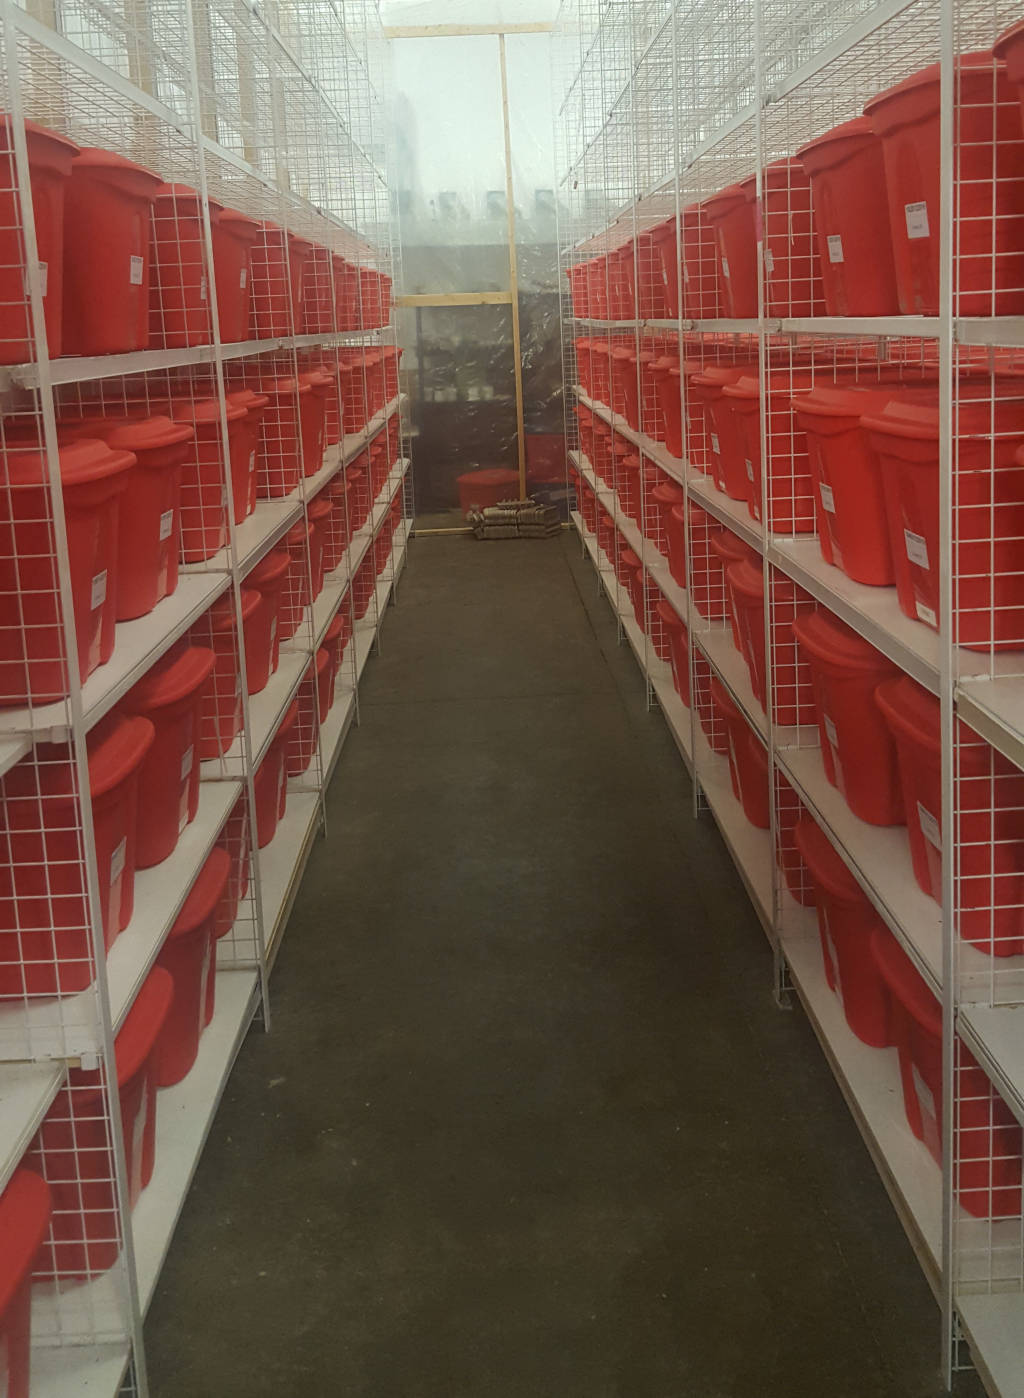 photo of a large cricket farm in a warehouse. Long isle in the center with hundreds of red cricket containers on shelves on both sides.